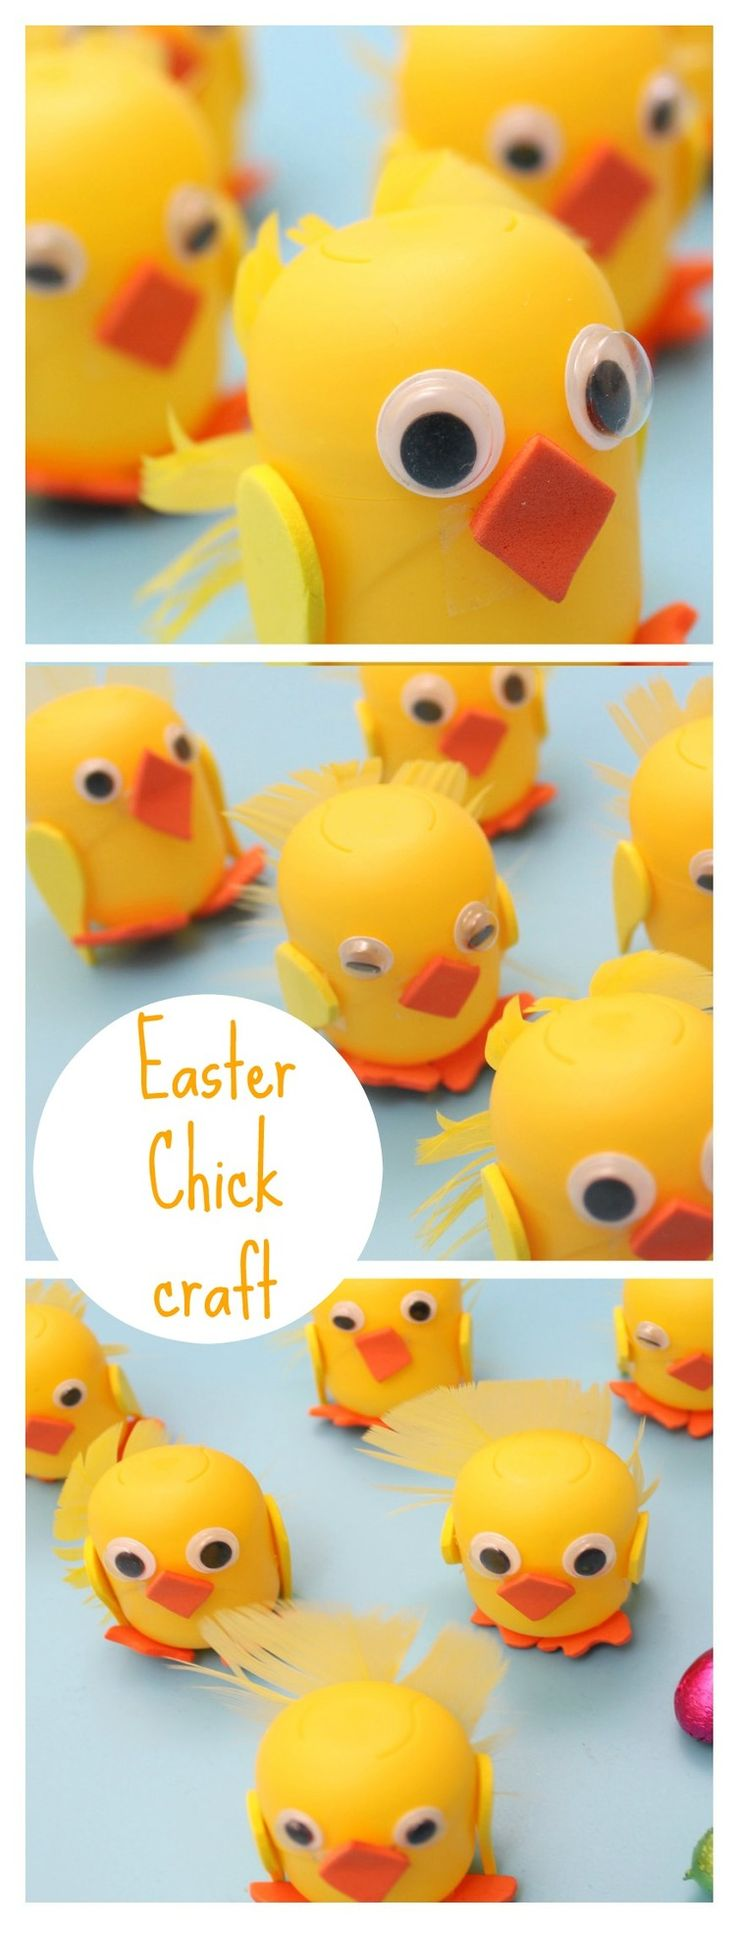 How to make a kinder egg chick